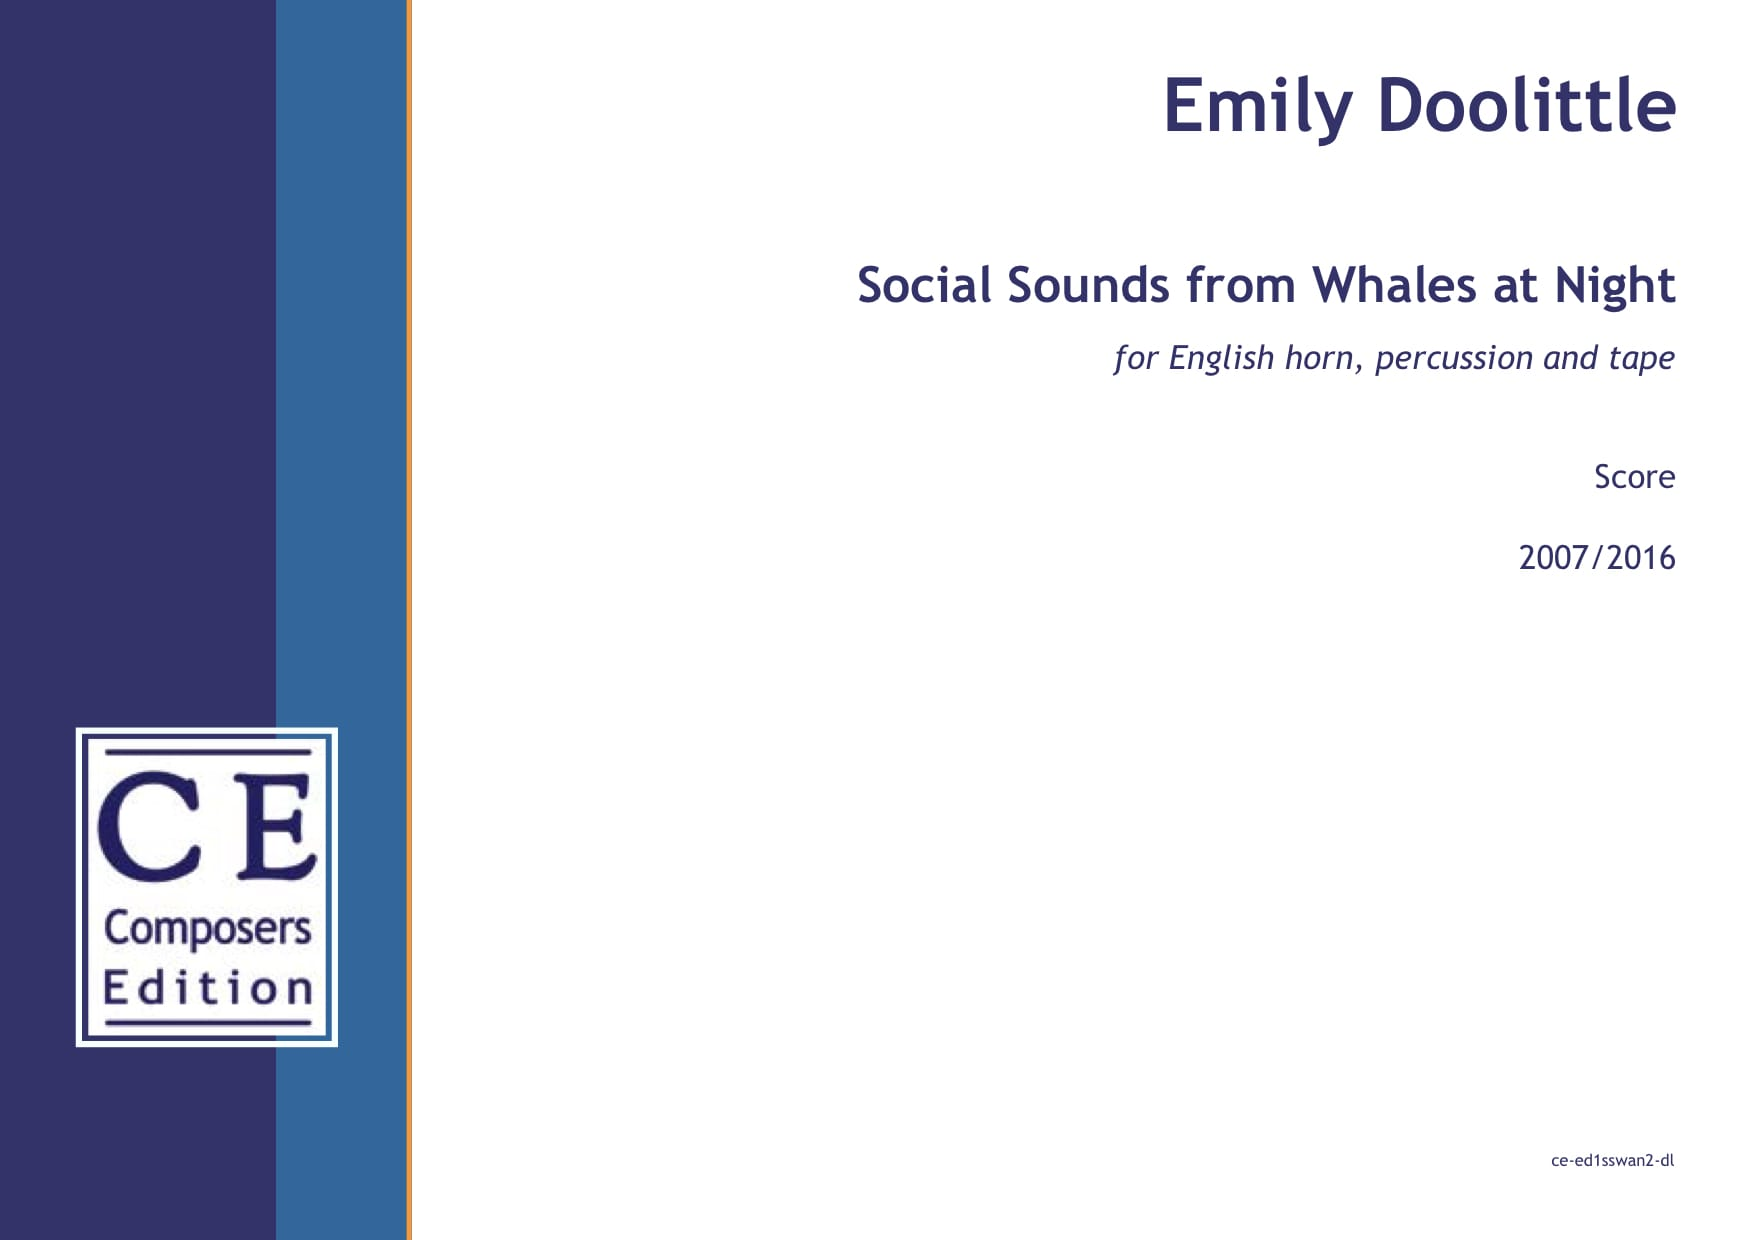 Emily Doolittle: Social Sounds from Whales at Night (English horn version) for English horn, percussion and tape